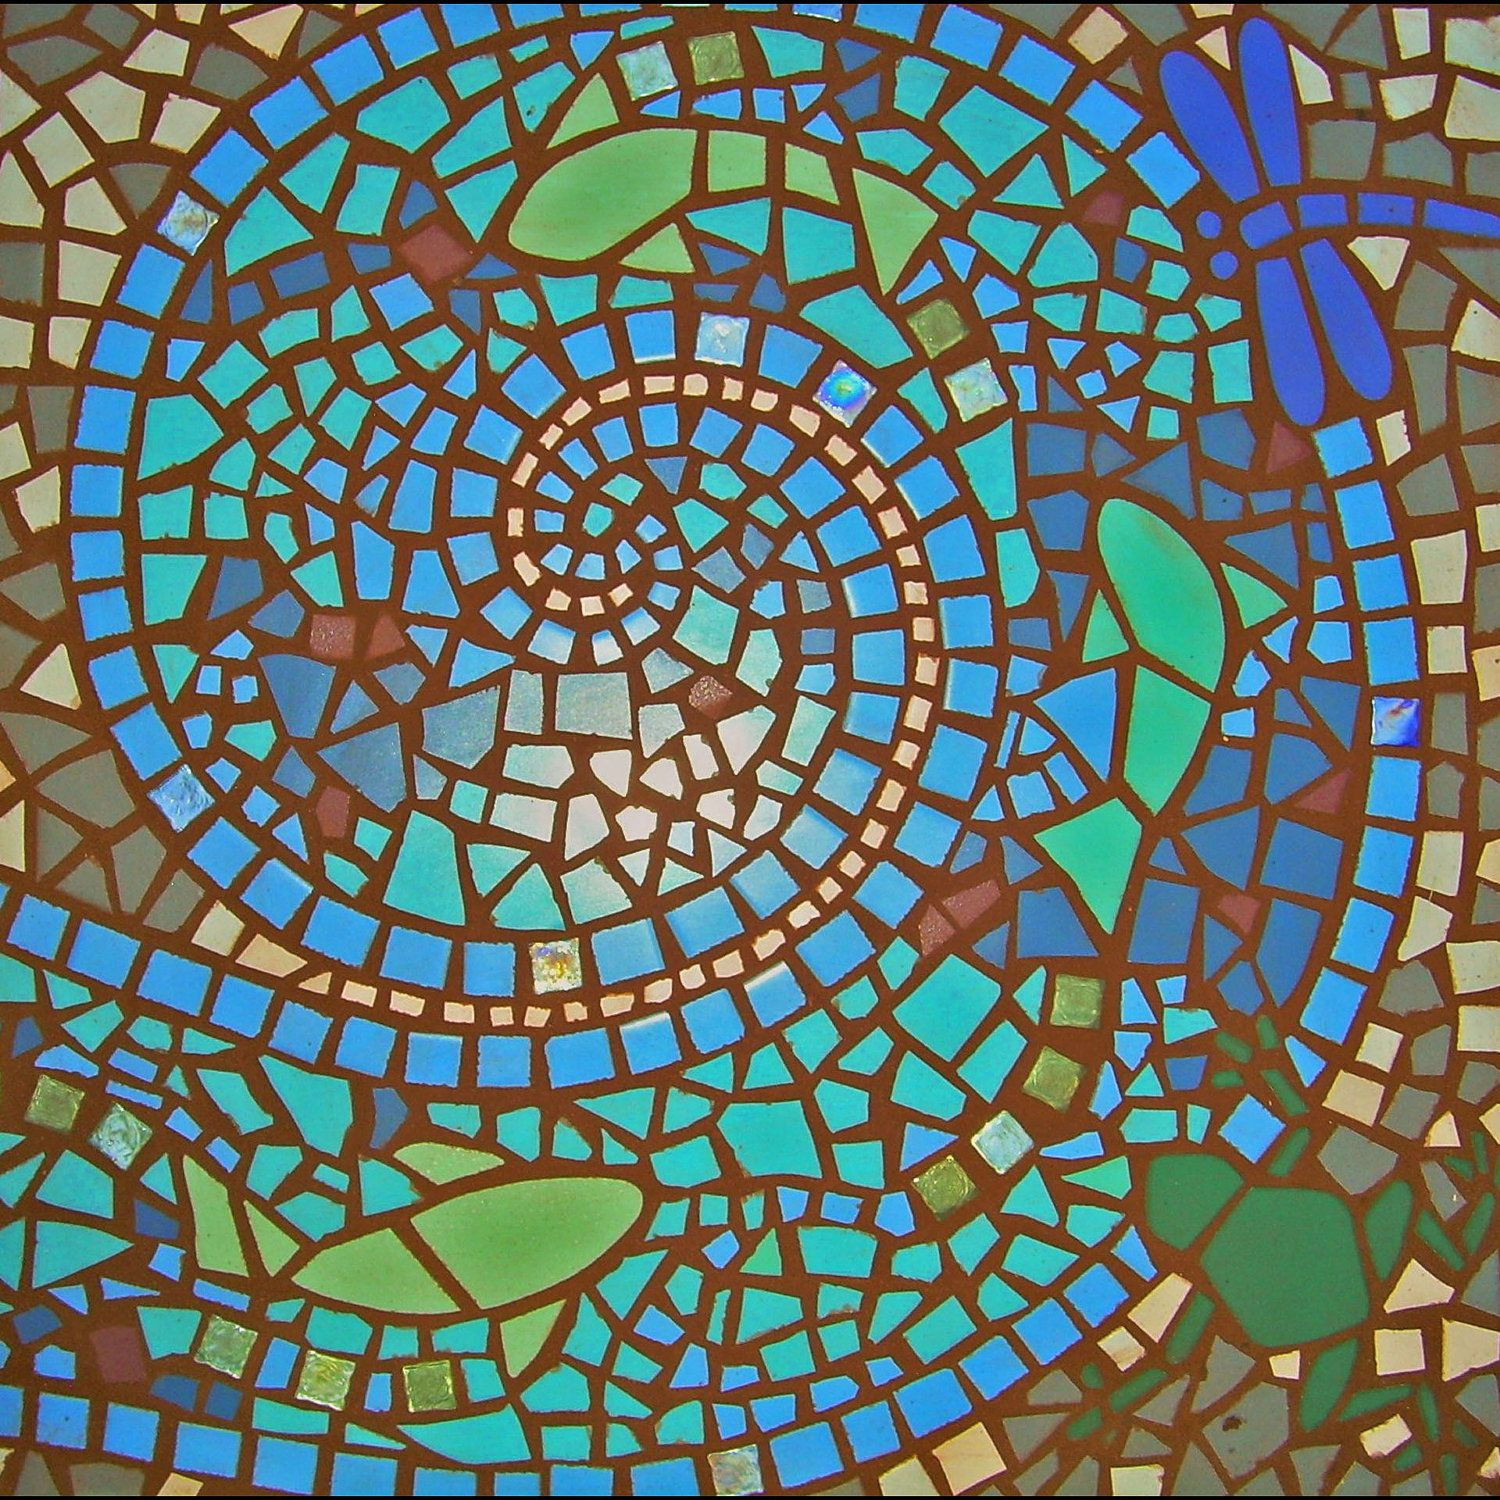 Custom Exterior Mosaic Patio Insert, Comes Assembled And Ready To Install,  2u0027 Square